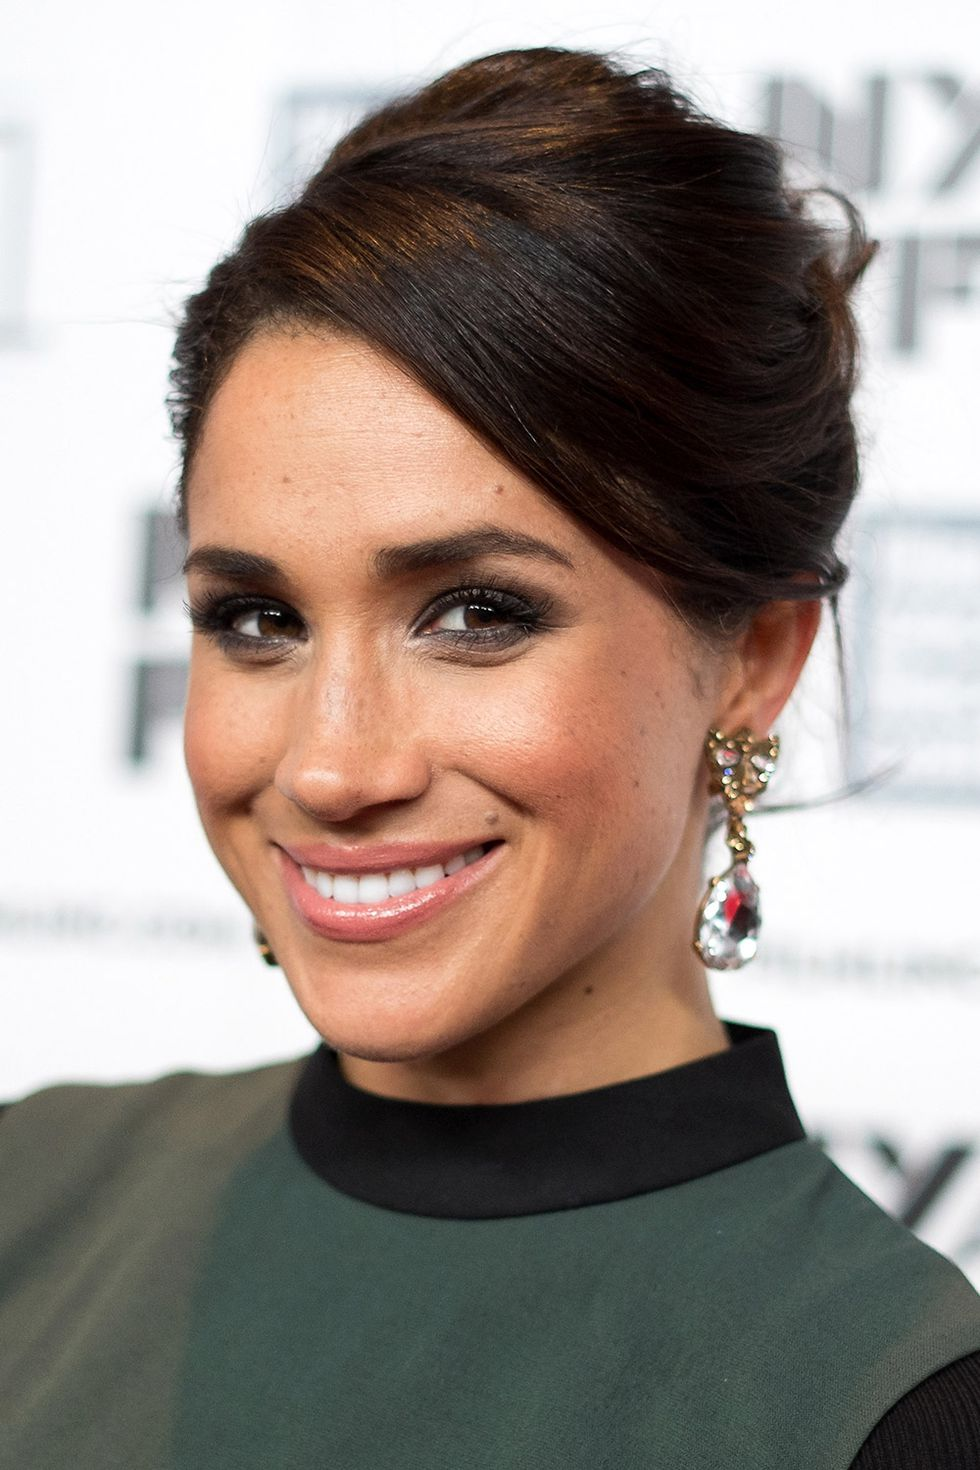 Meghan Markle Hairstyle 8